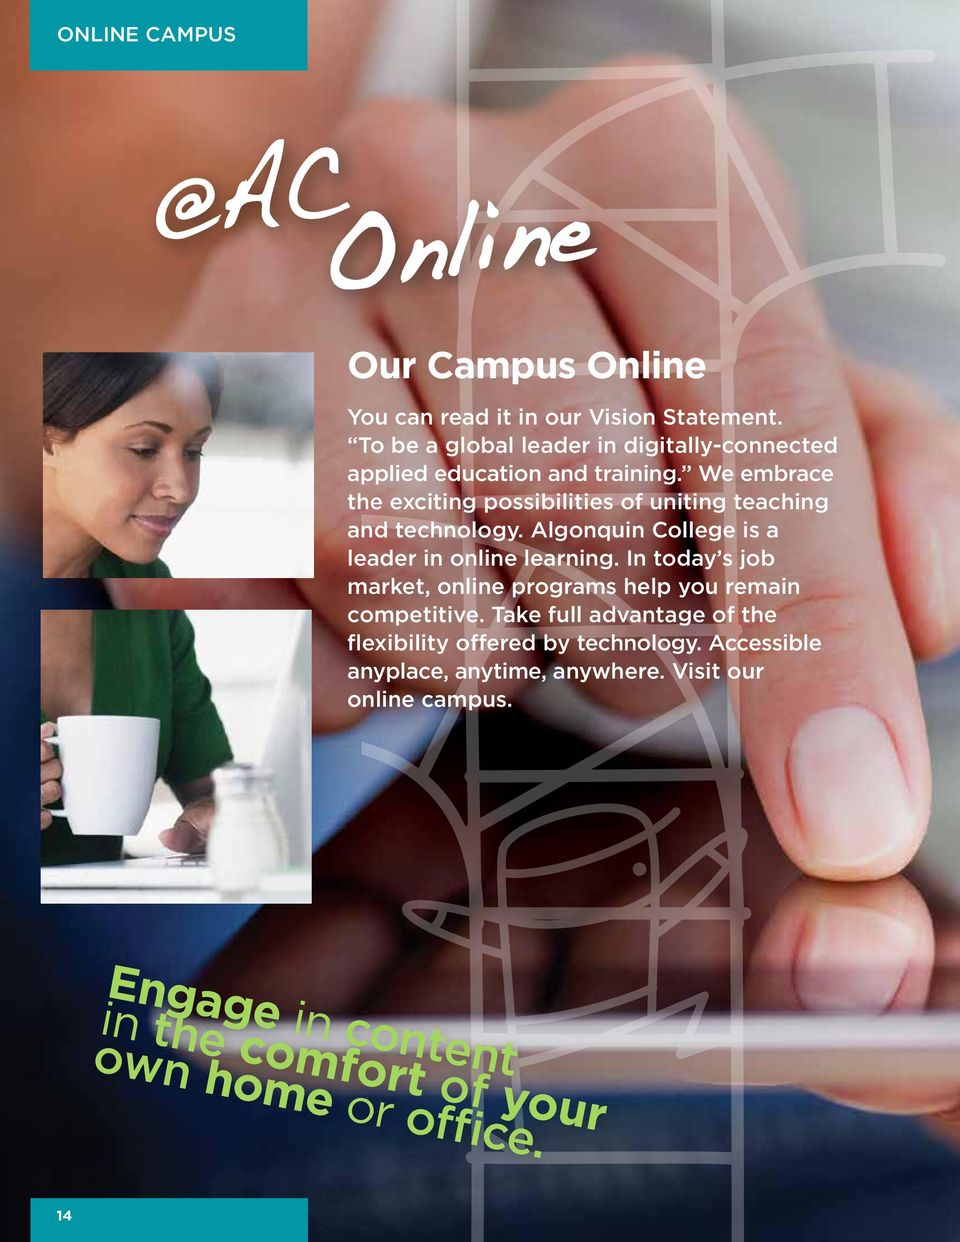 We embrace the exciting possibilities of uniting teaching and technology. Algonquin College is a leader in online learning.